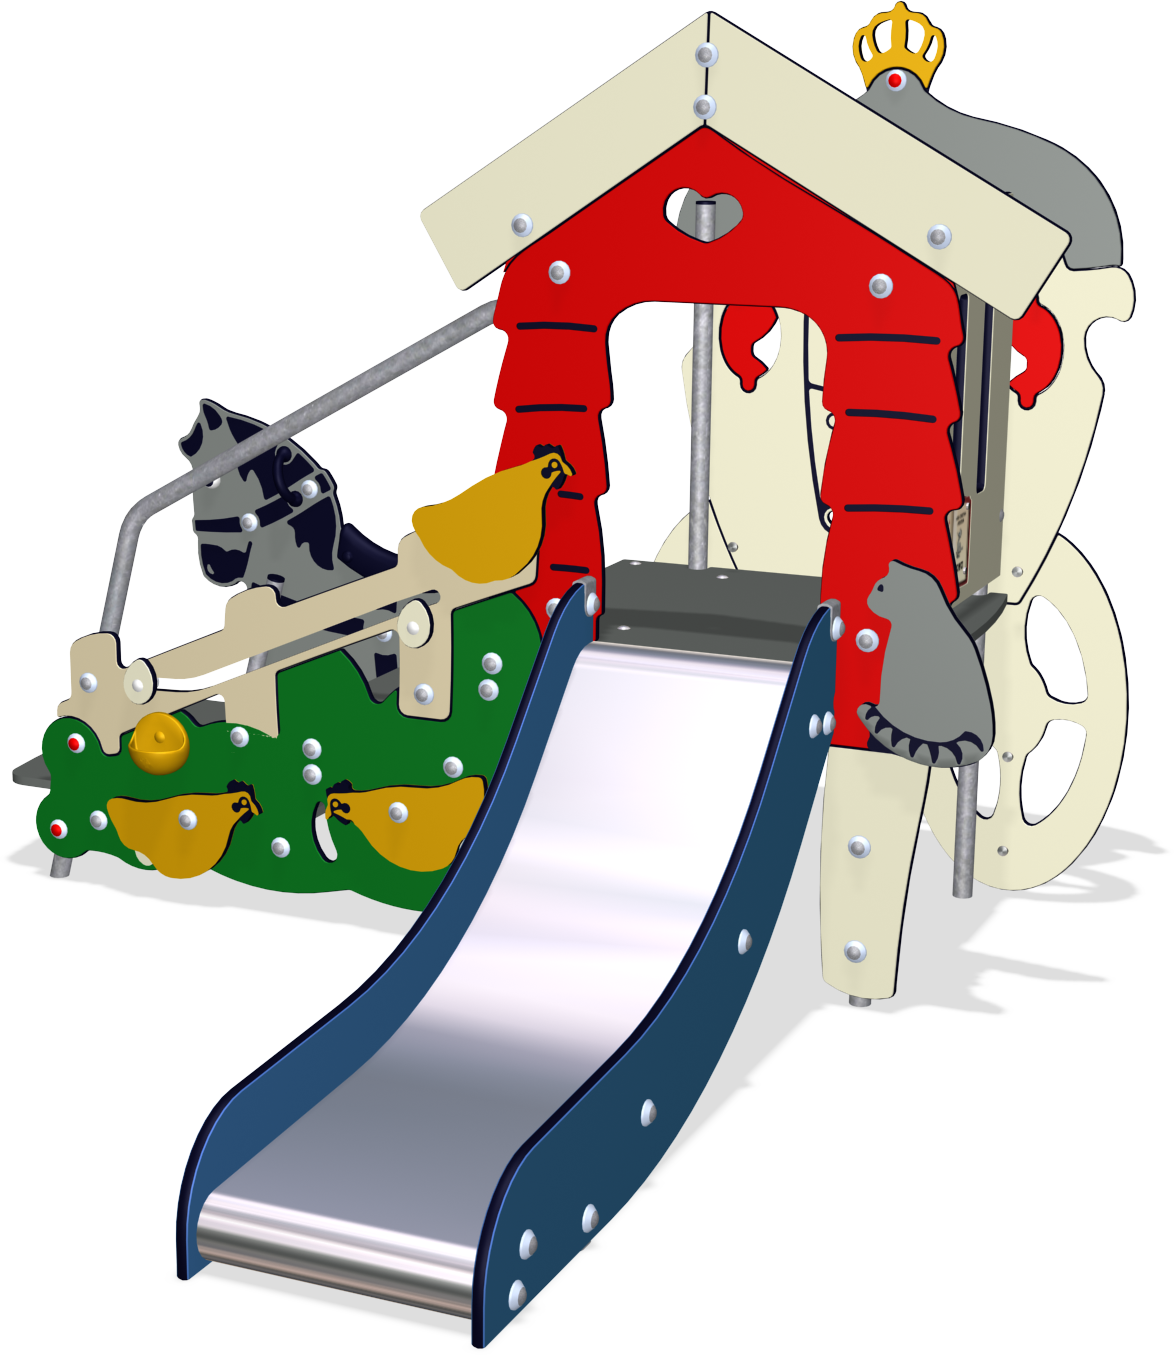 Clipart park toddler playground. Chicken farm and horse